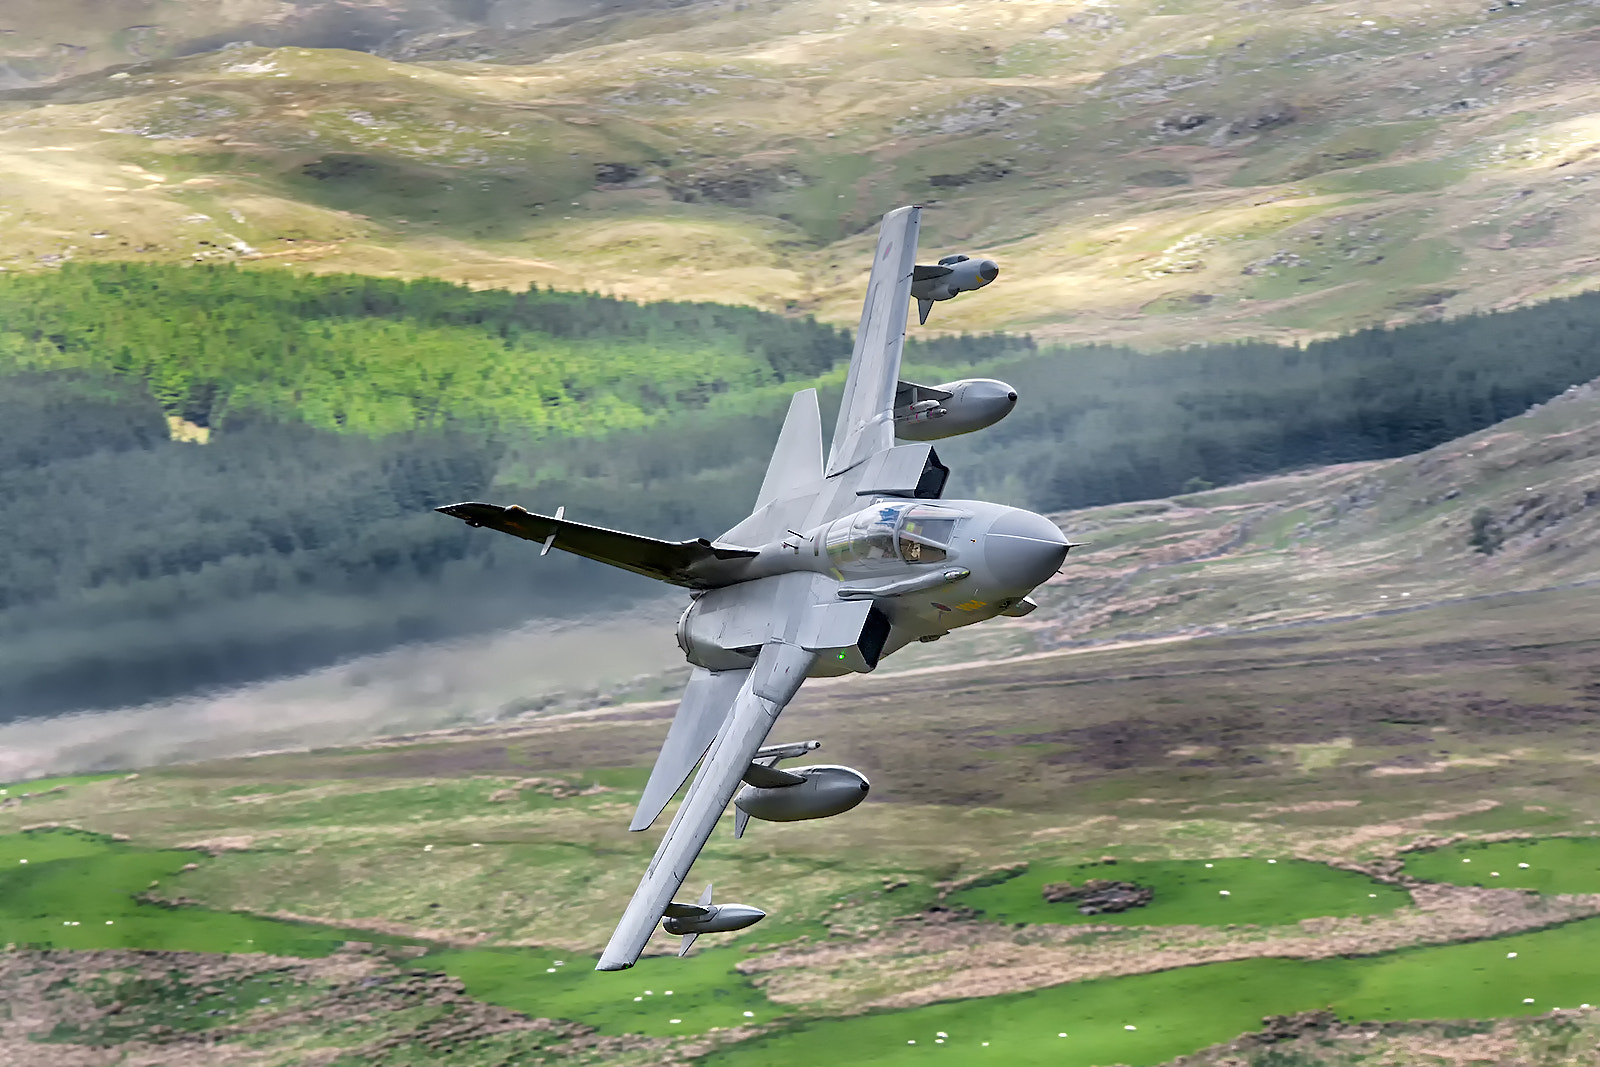 Photograph Low Flying Aircraft in the Mach Loop in Wales by Ian Schofield on 500px